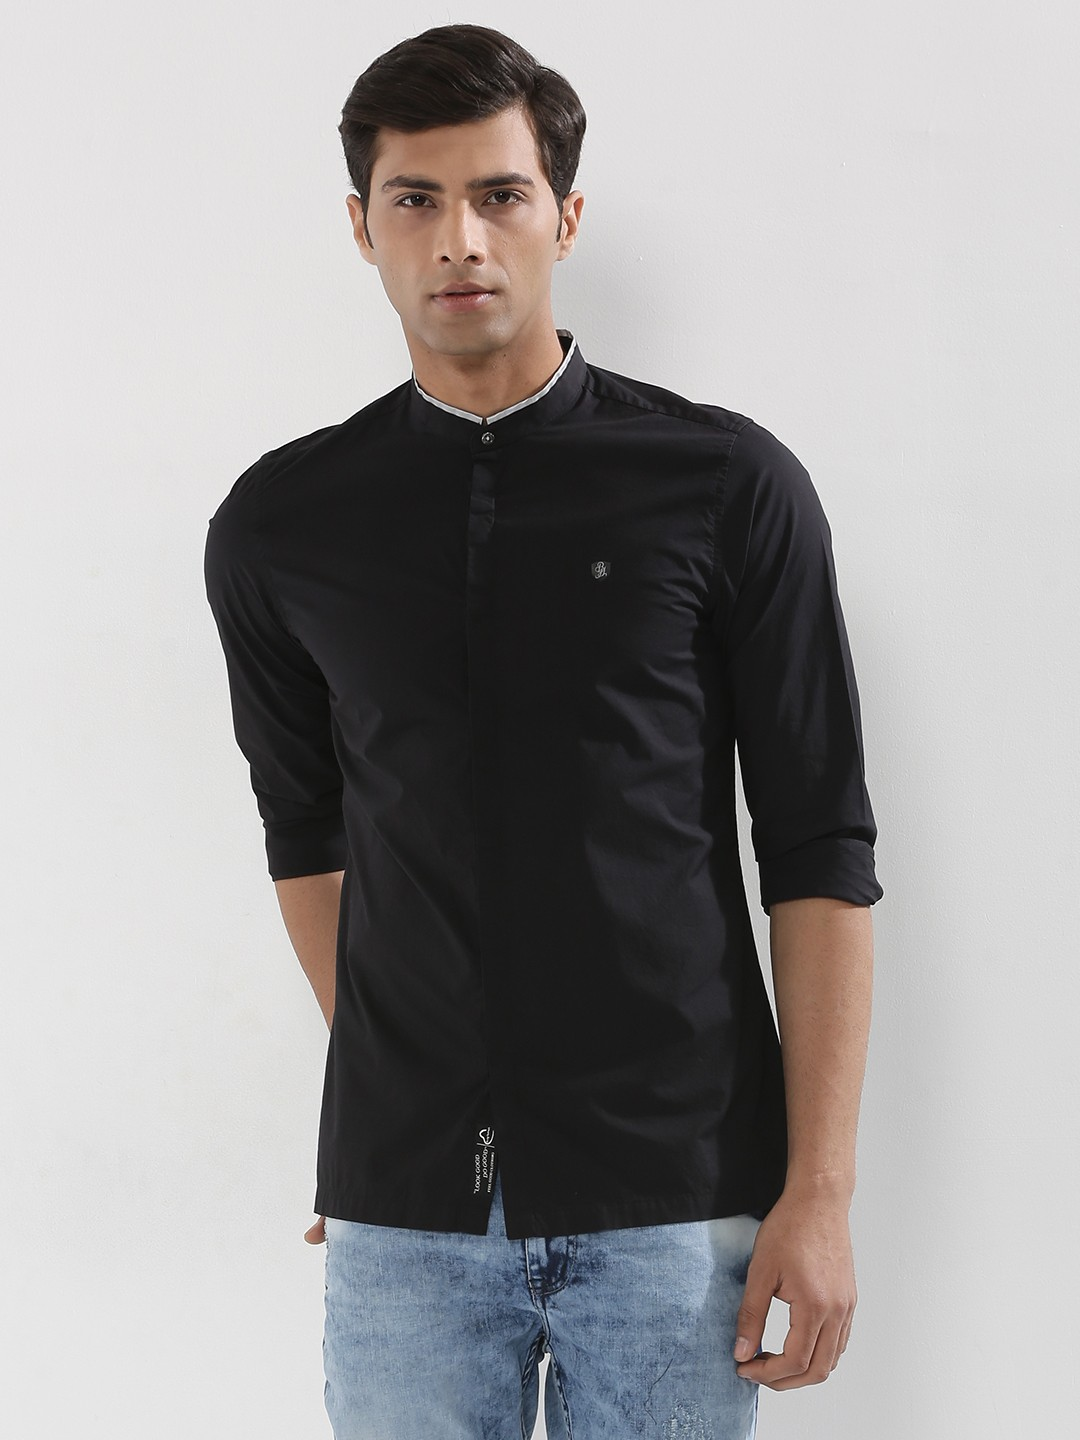 Black t shirt collar - Being Human Shirt With Reflective Collar Line